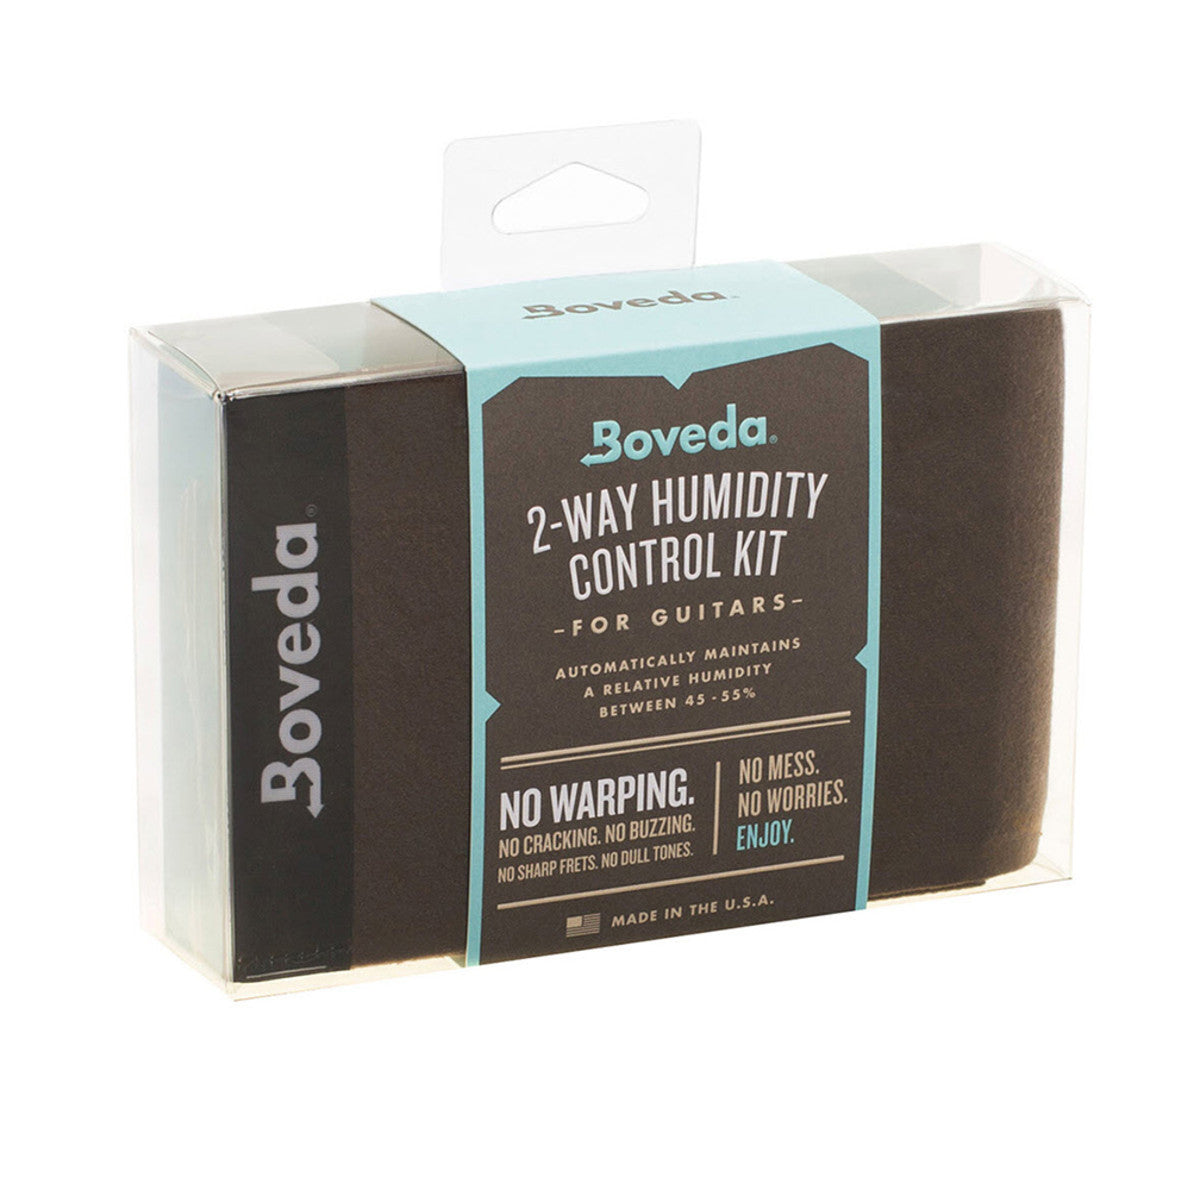 Boveda Guitar Humidifier Kit